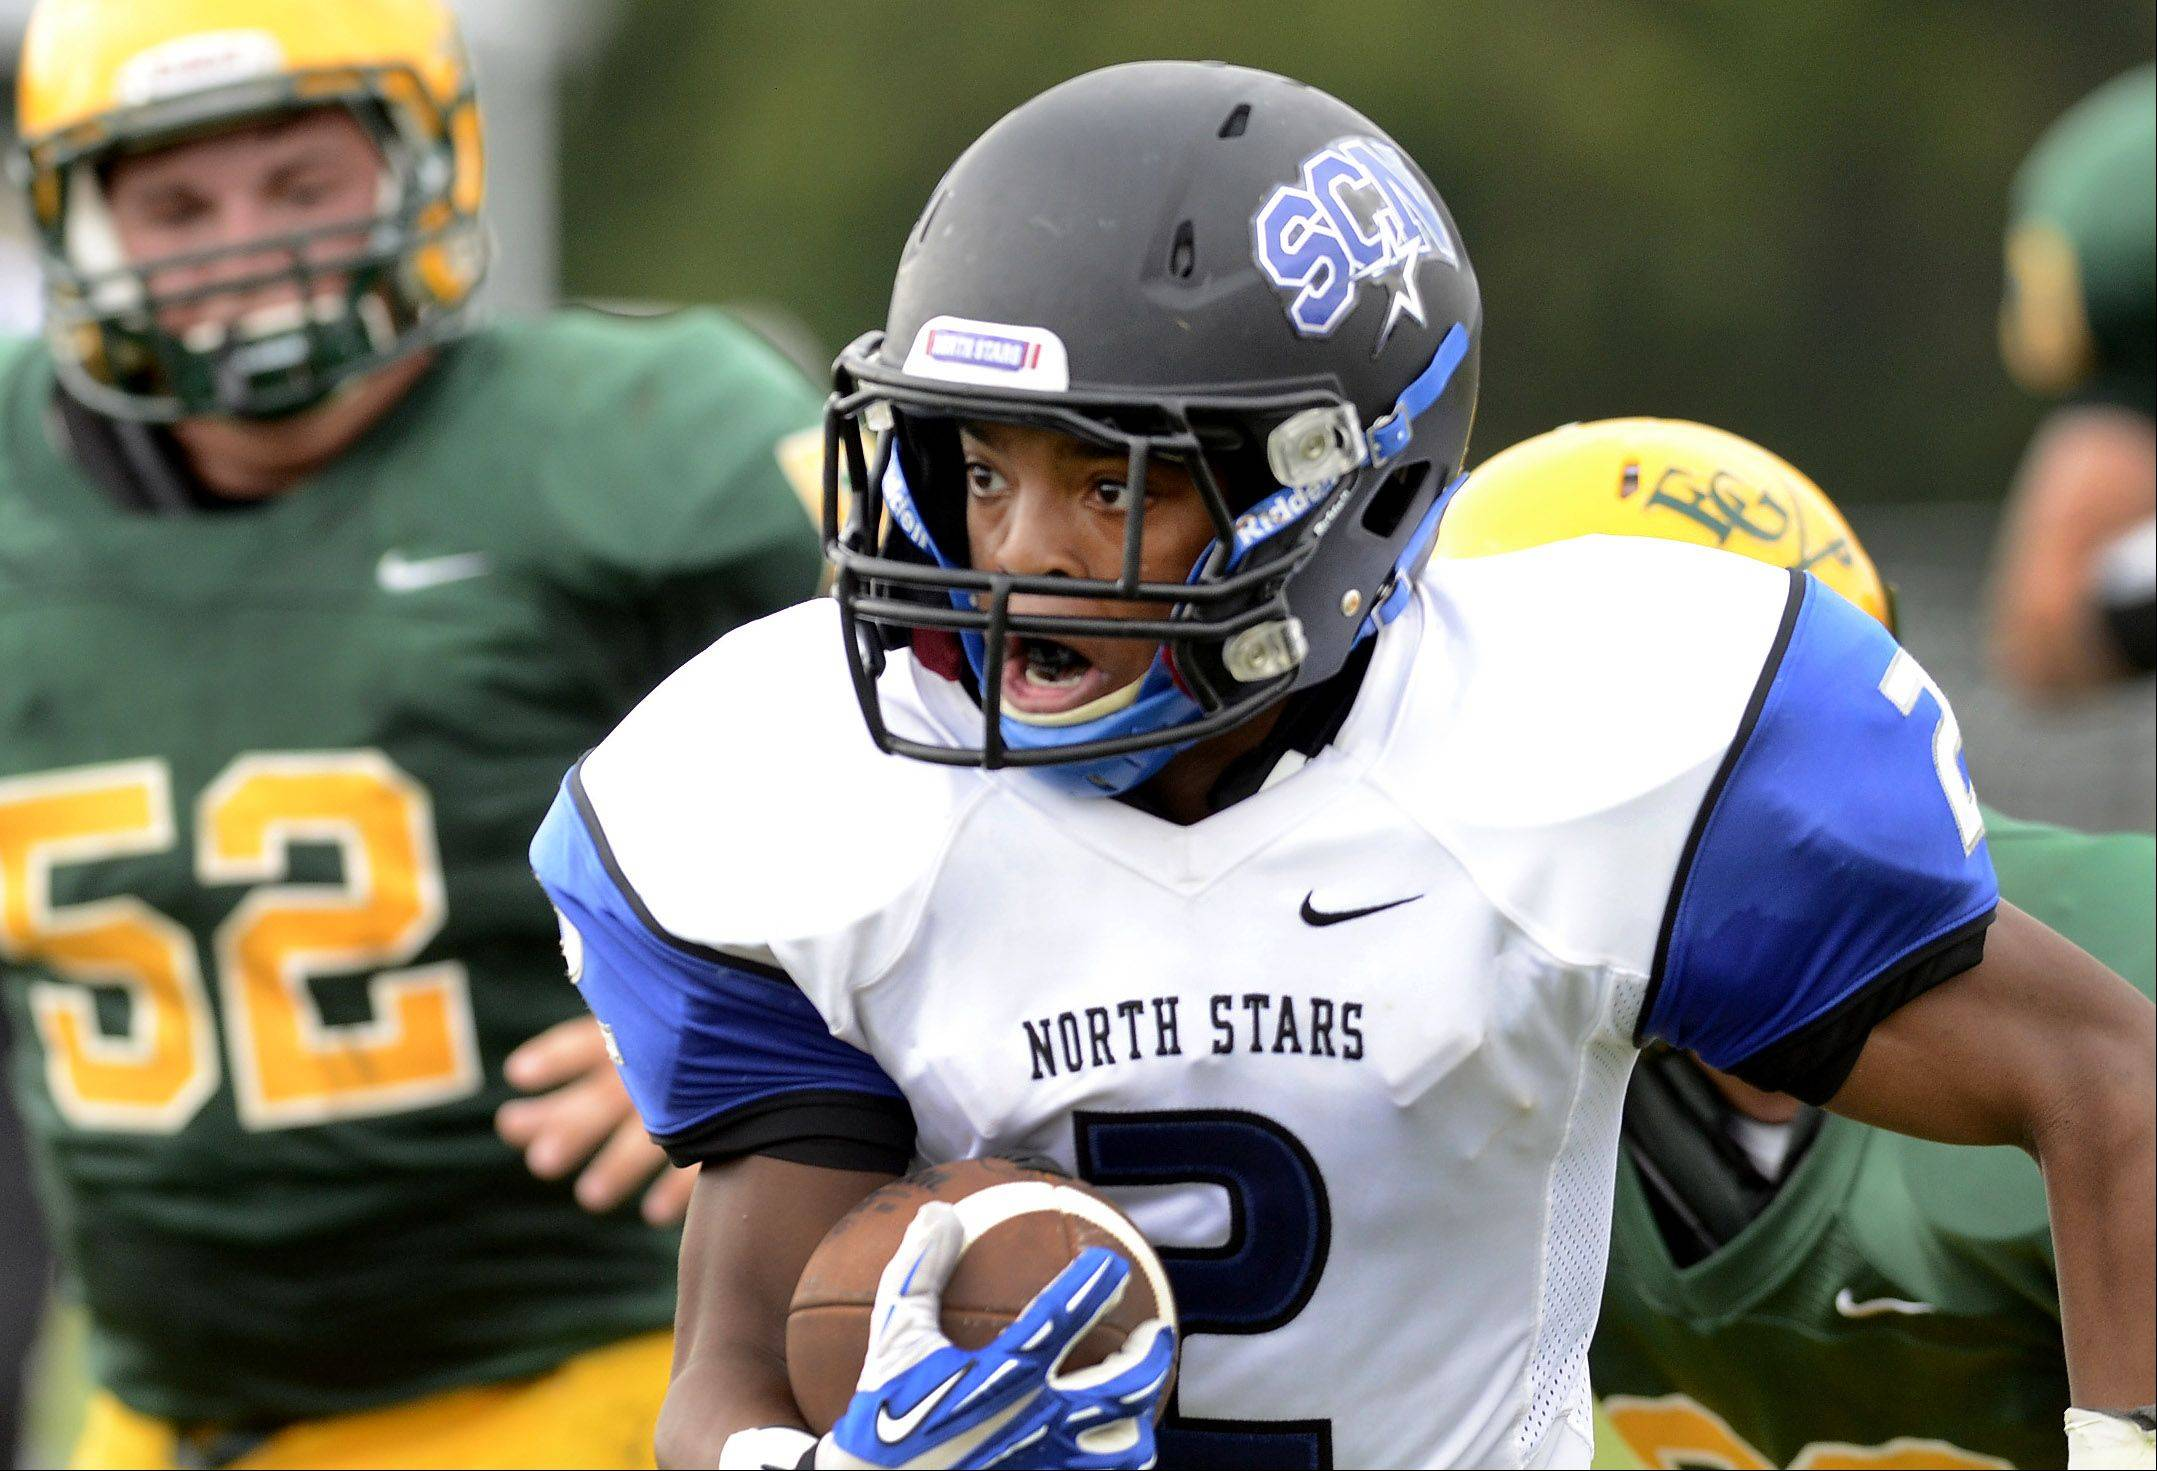 Nate Newbill of St. Charles runs after a catch during St. Charles North at Elk Grove football.